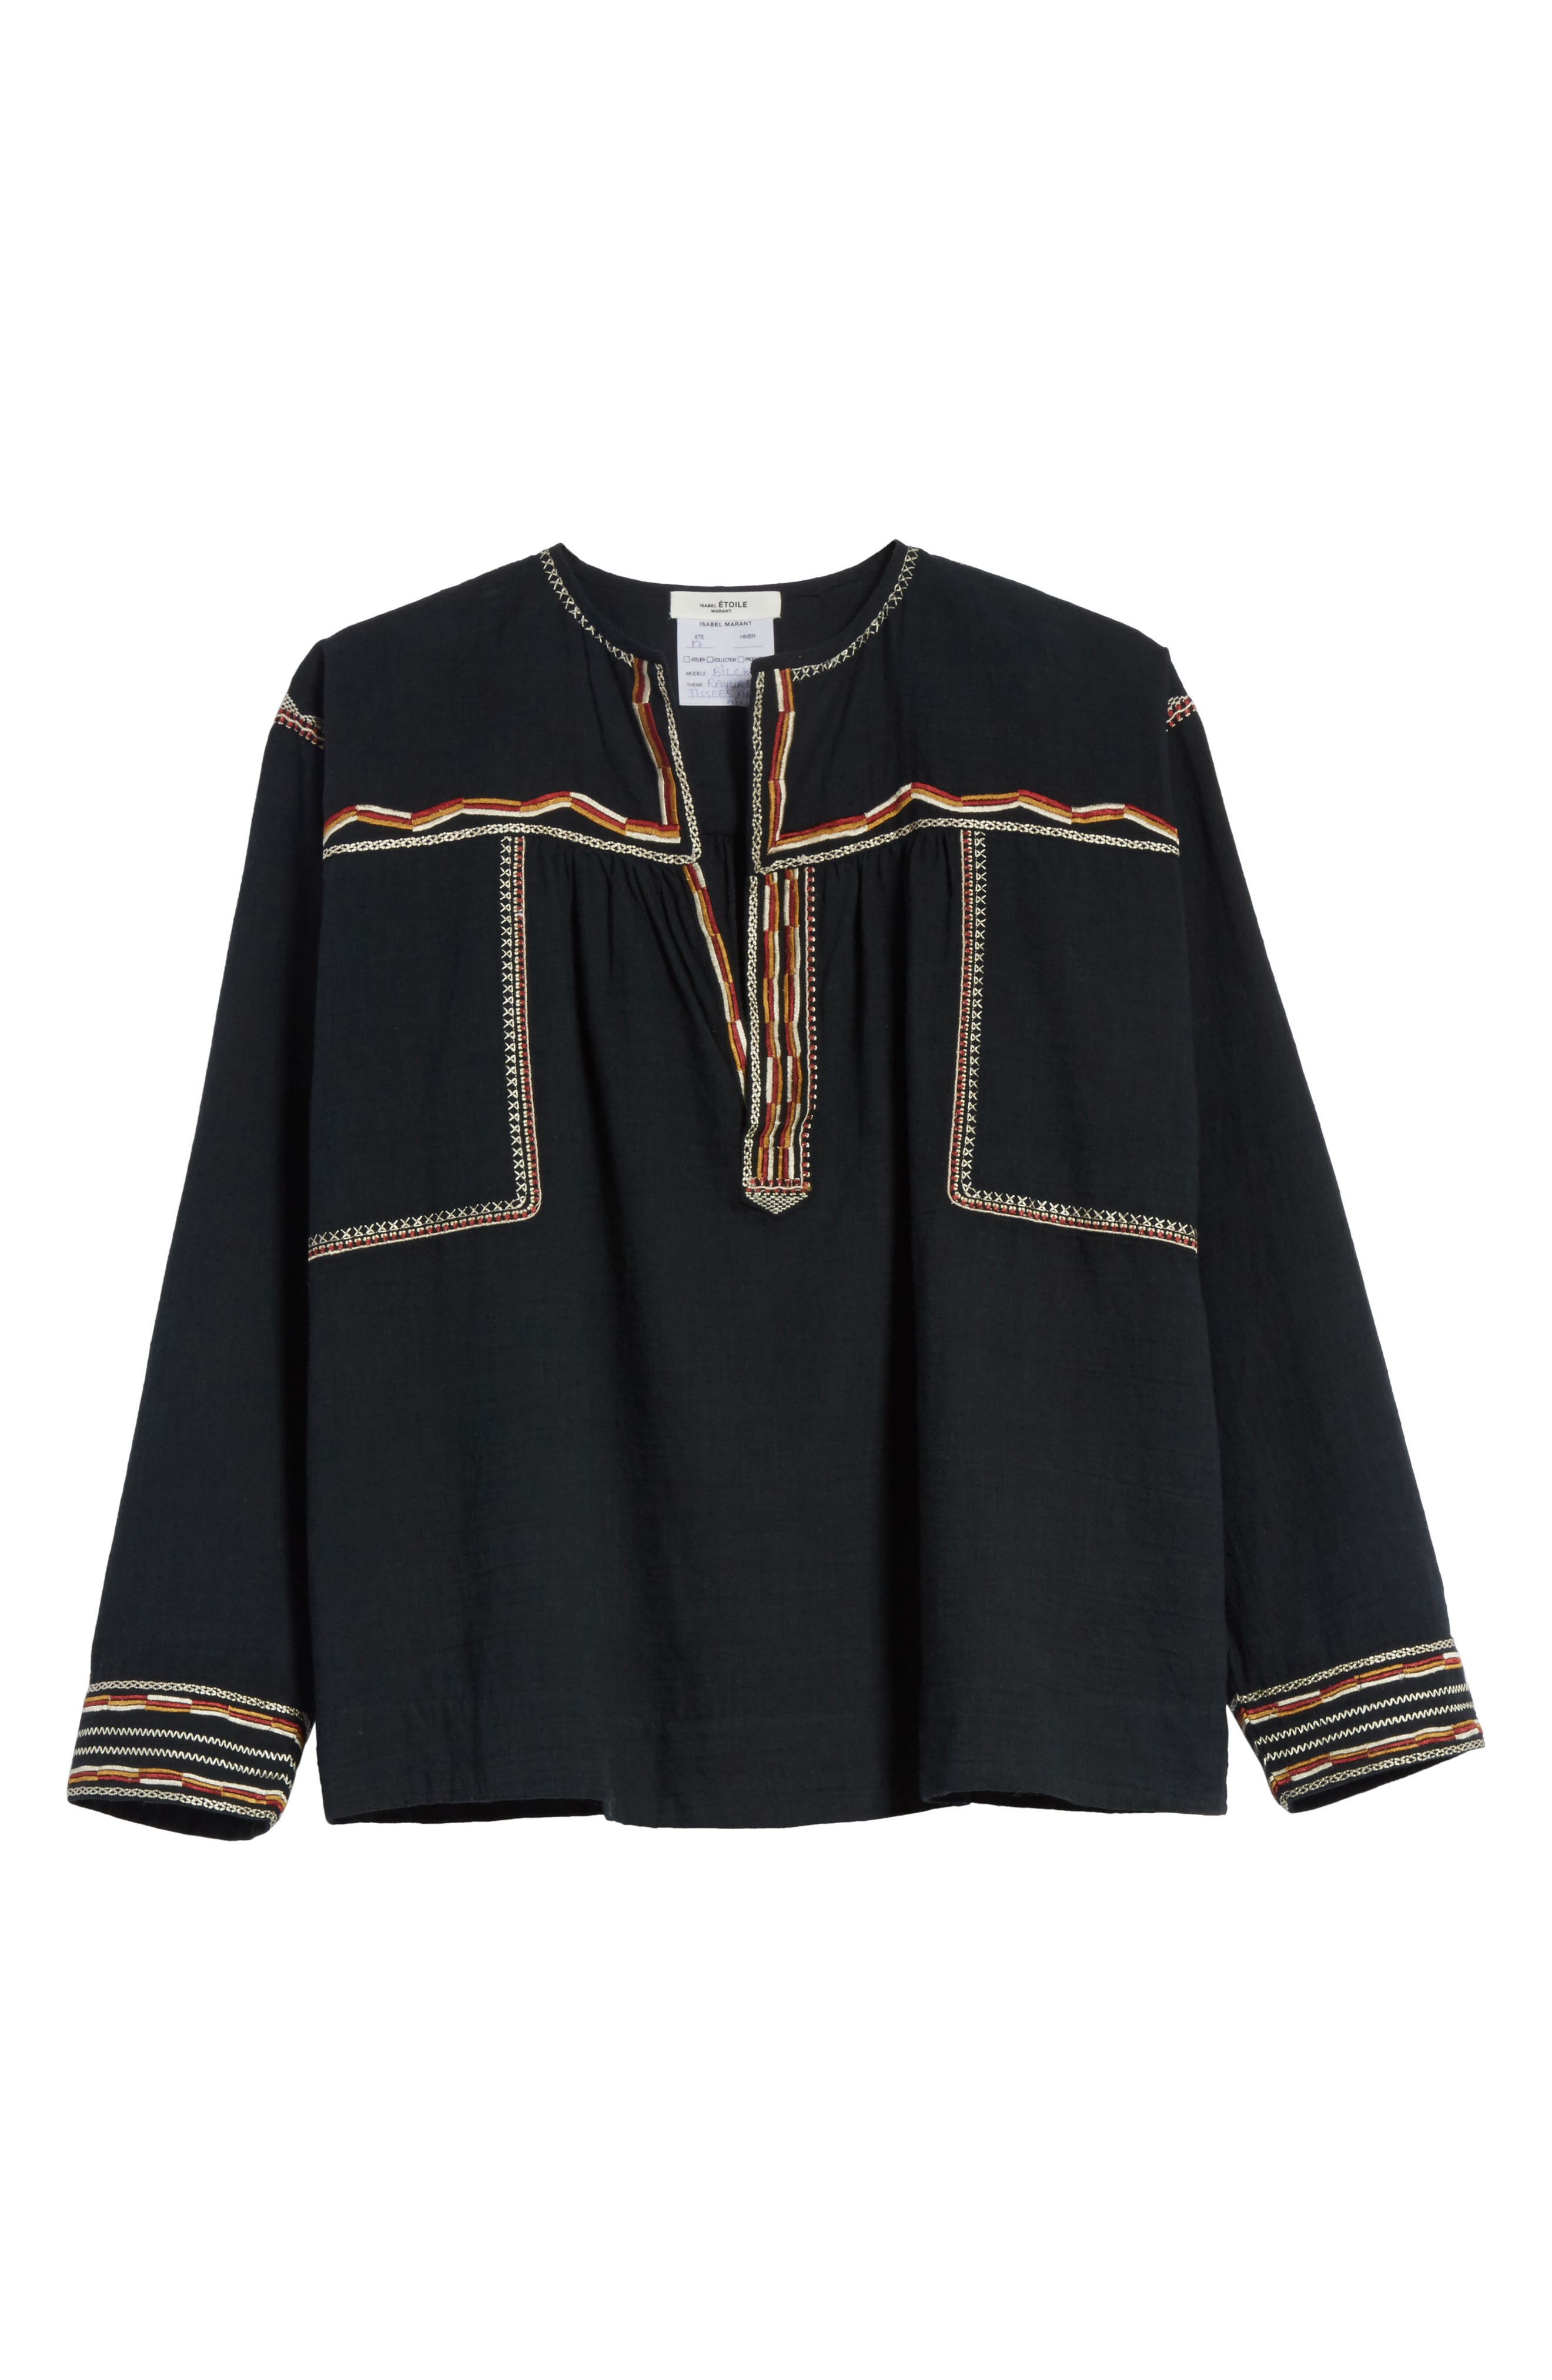 Isabel Marant Étoile Blicky Embroidered Top,                             Alternate thumbnail 6, color,                             Black